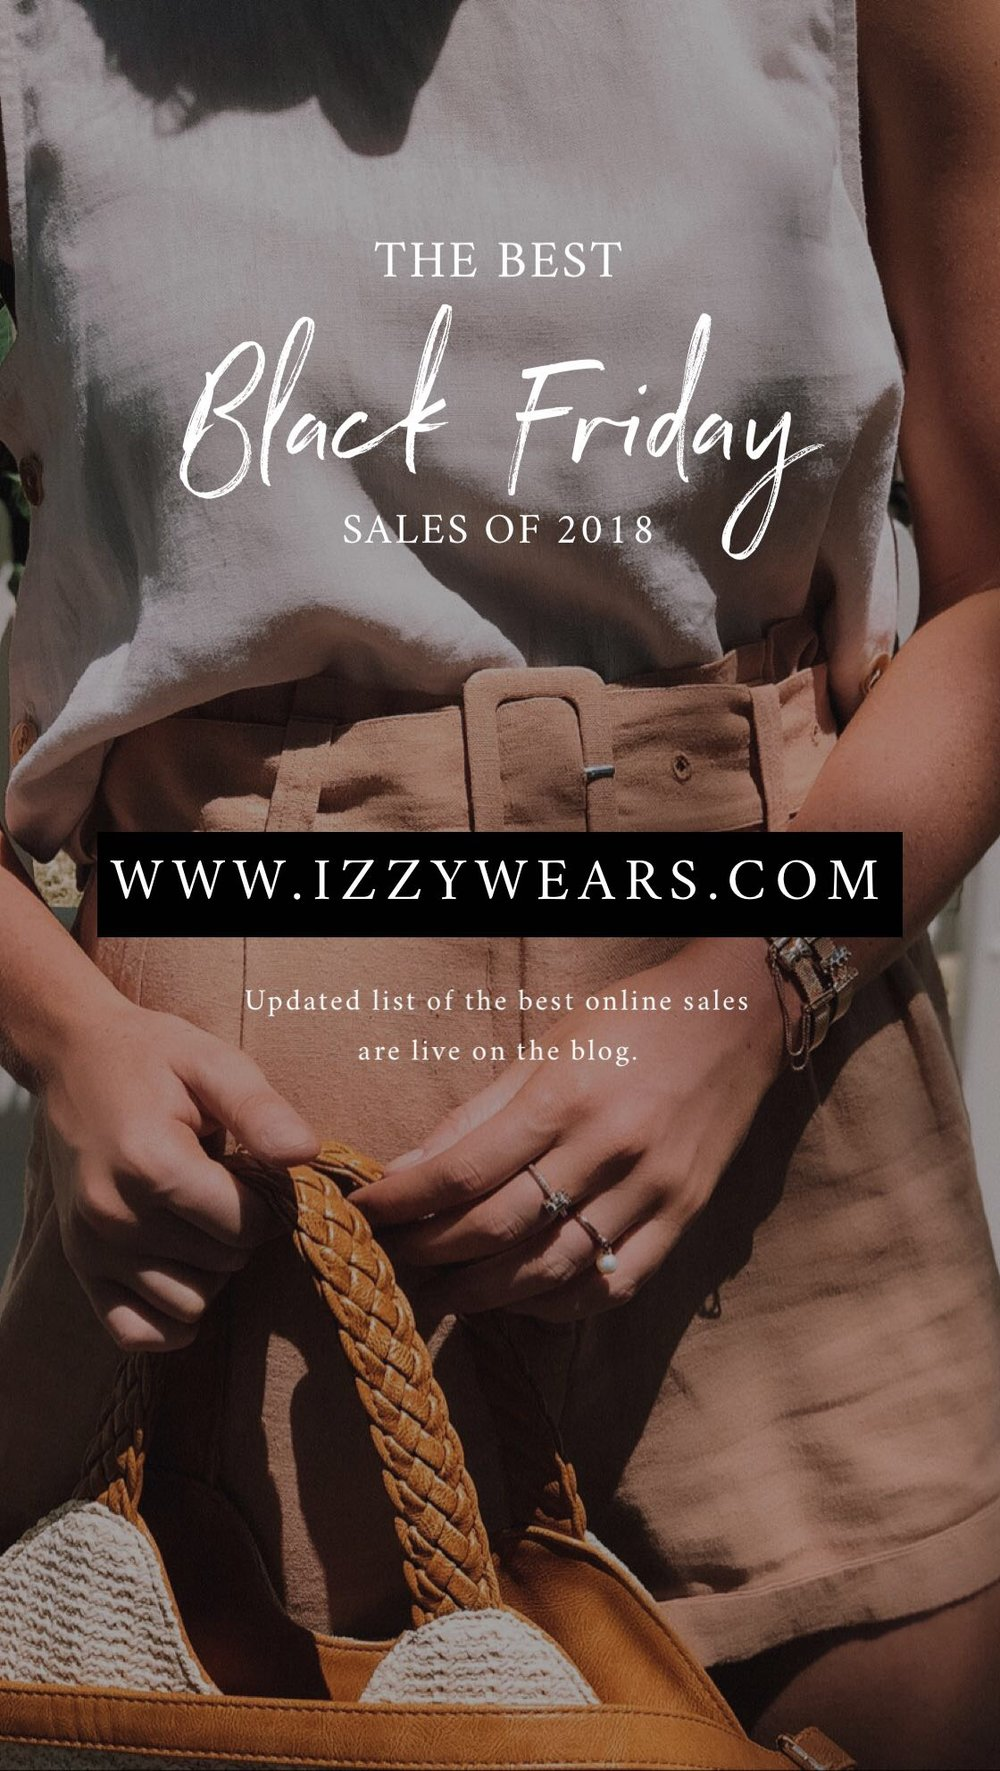 The Best Black Friday Sales 2018 - Izzy Wears Blog